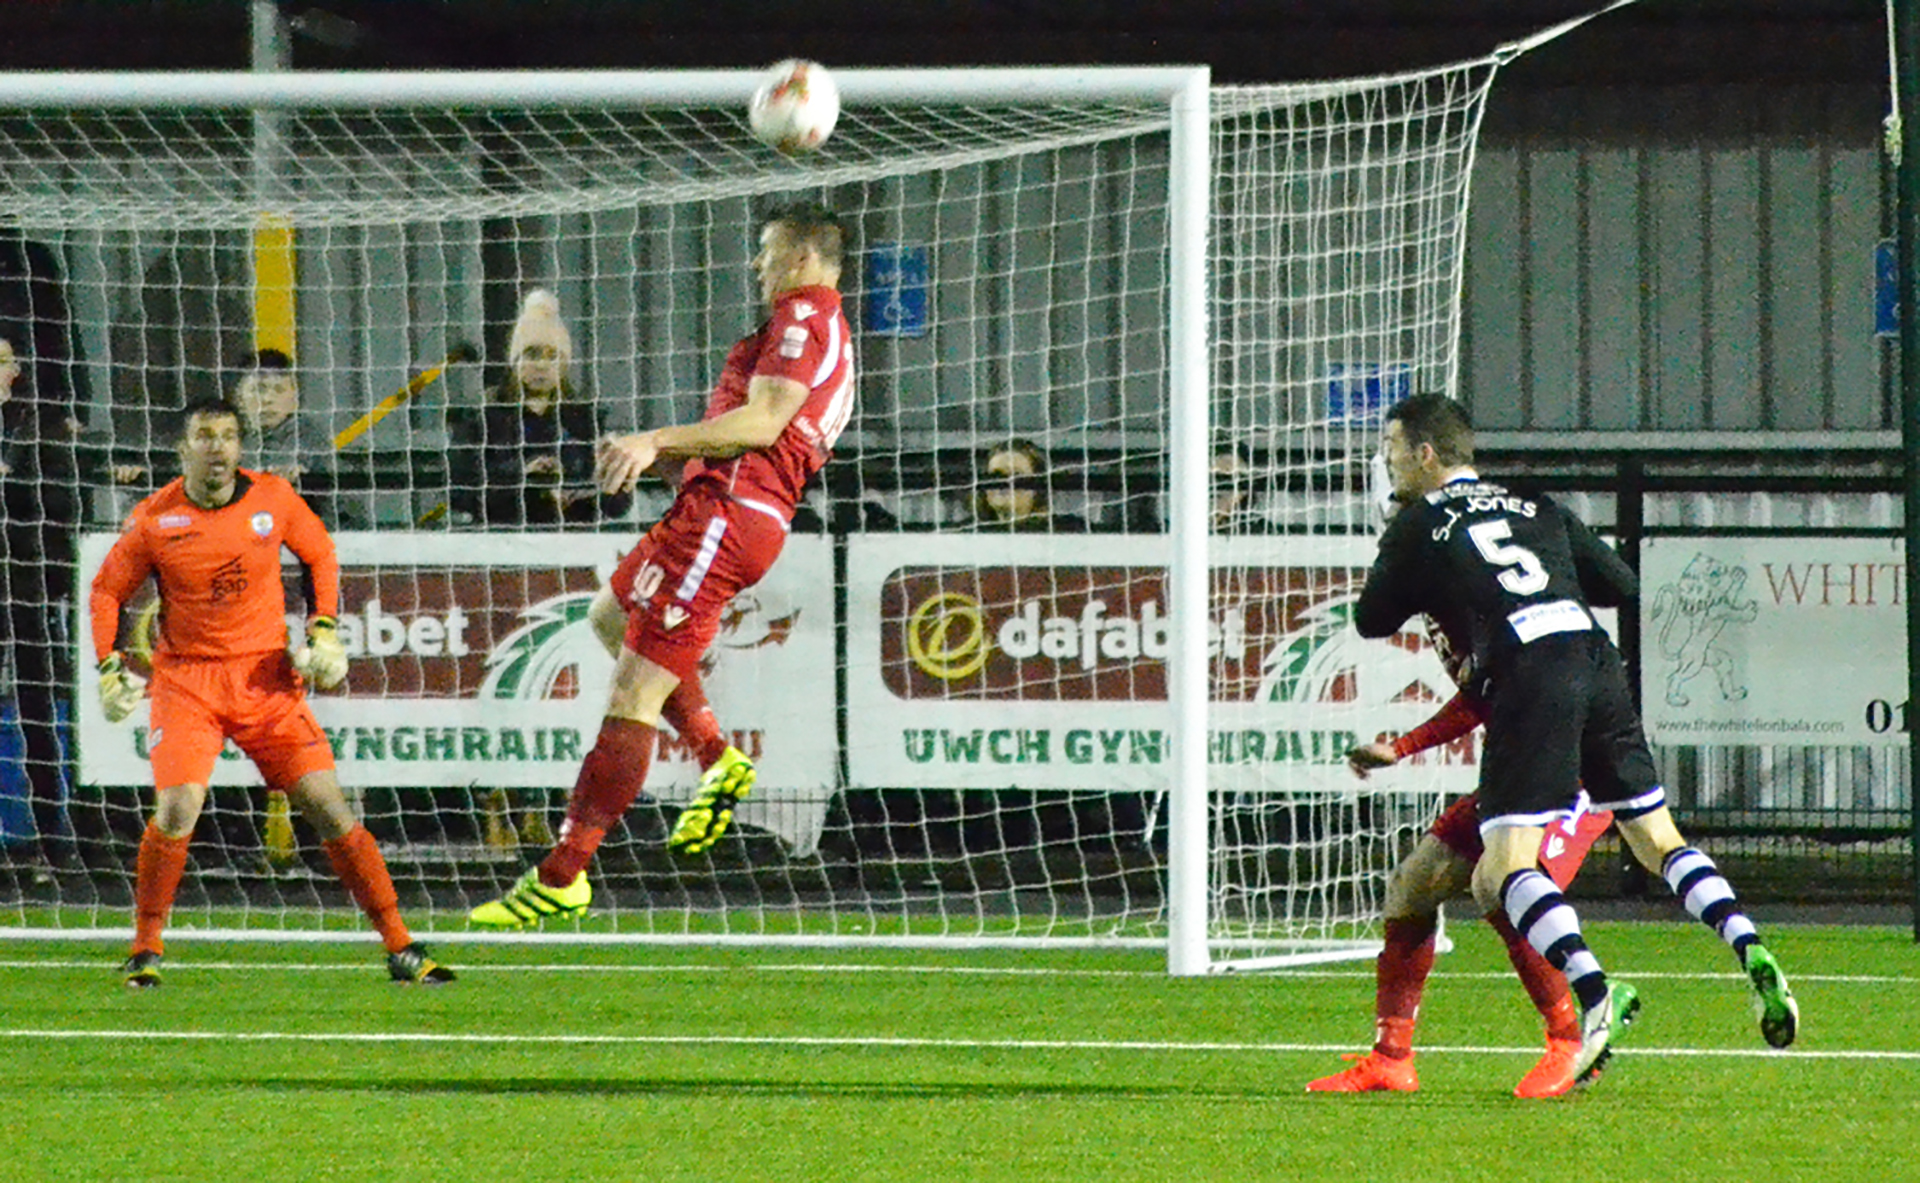 Les Davies rises highest to head clear for The Nomads - Photo courtesy of Bala Town FC